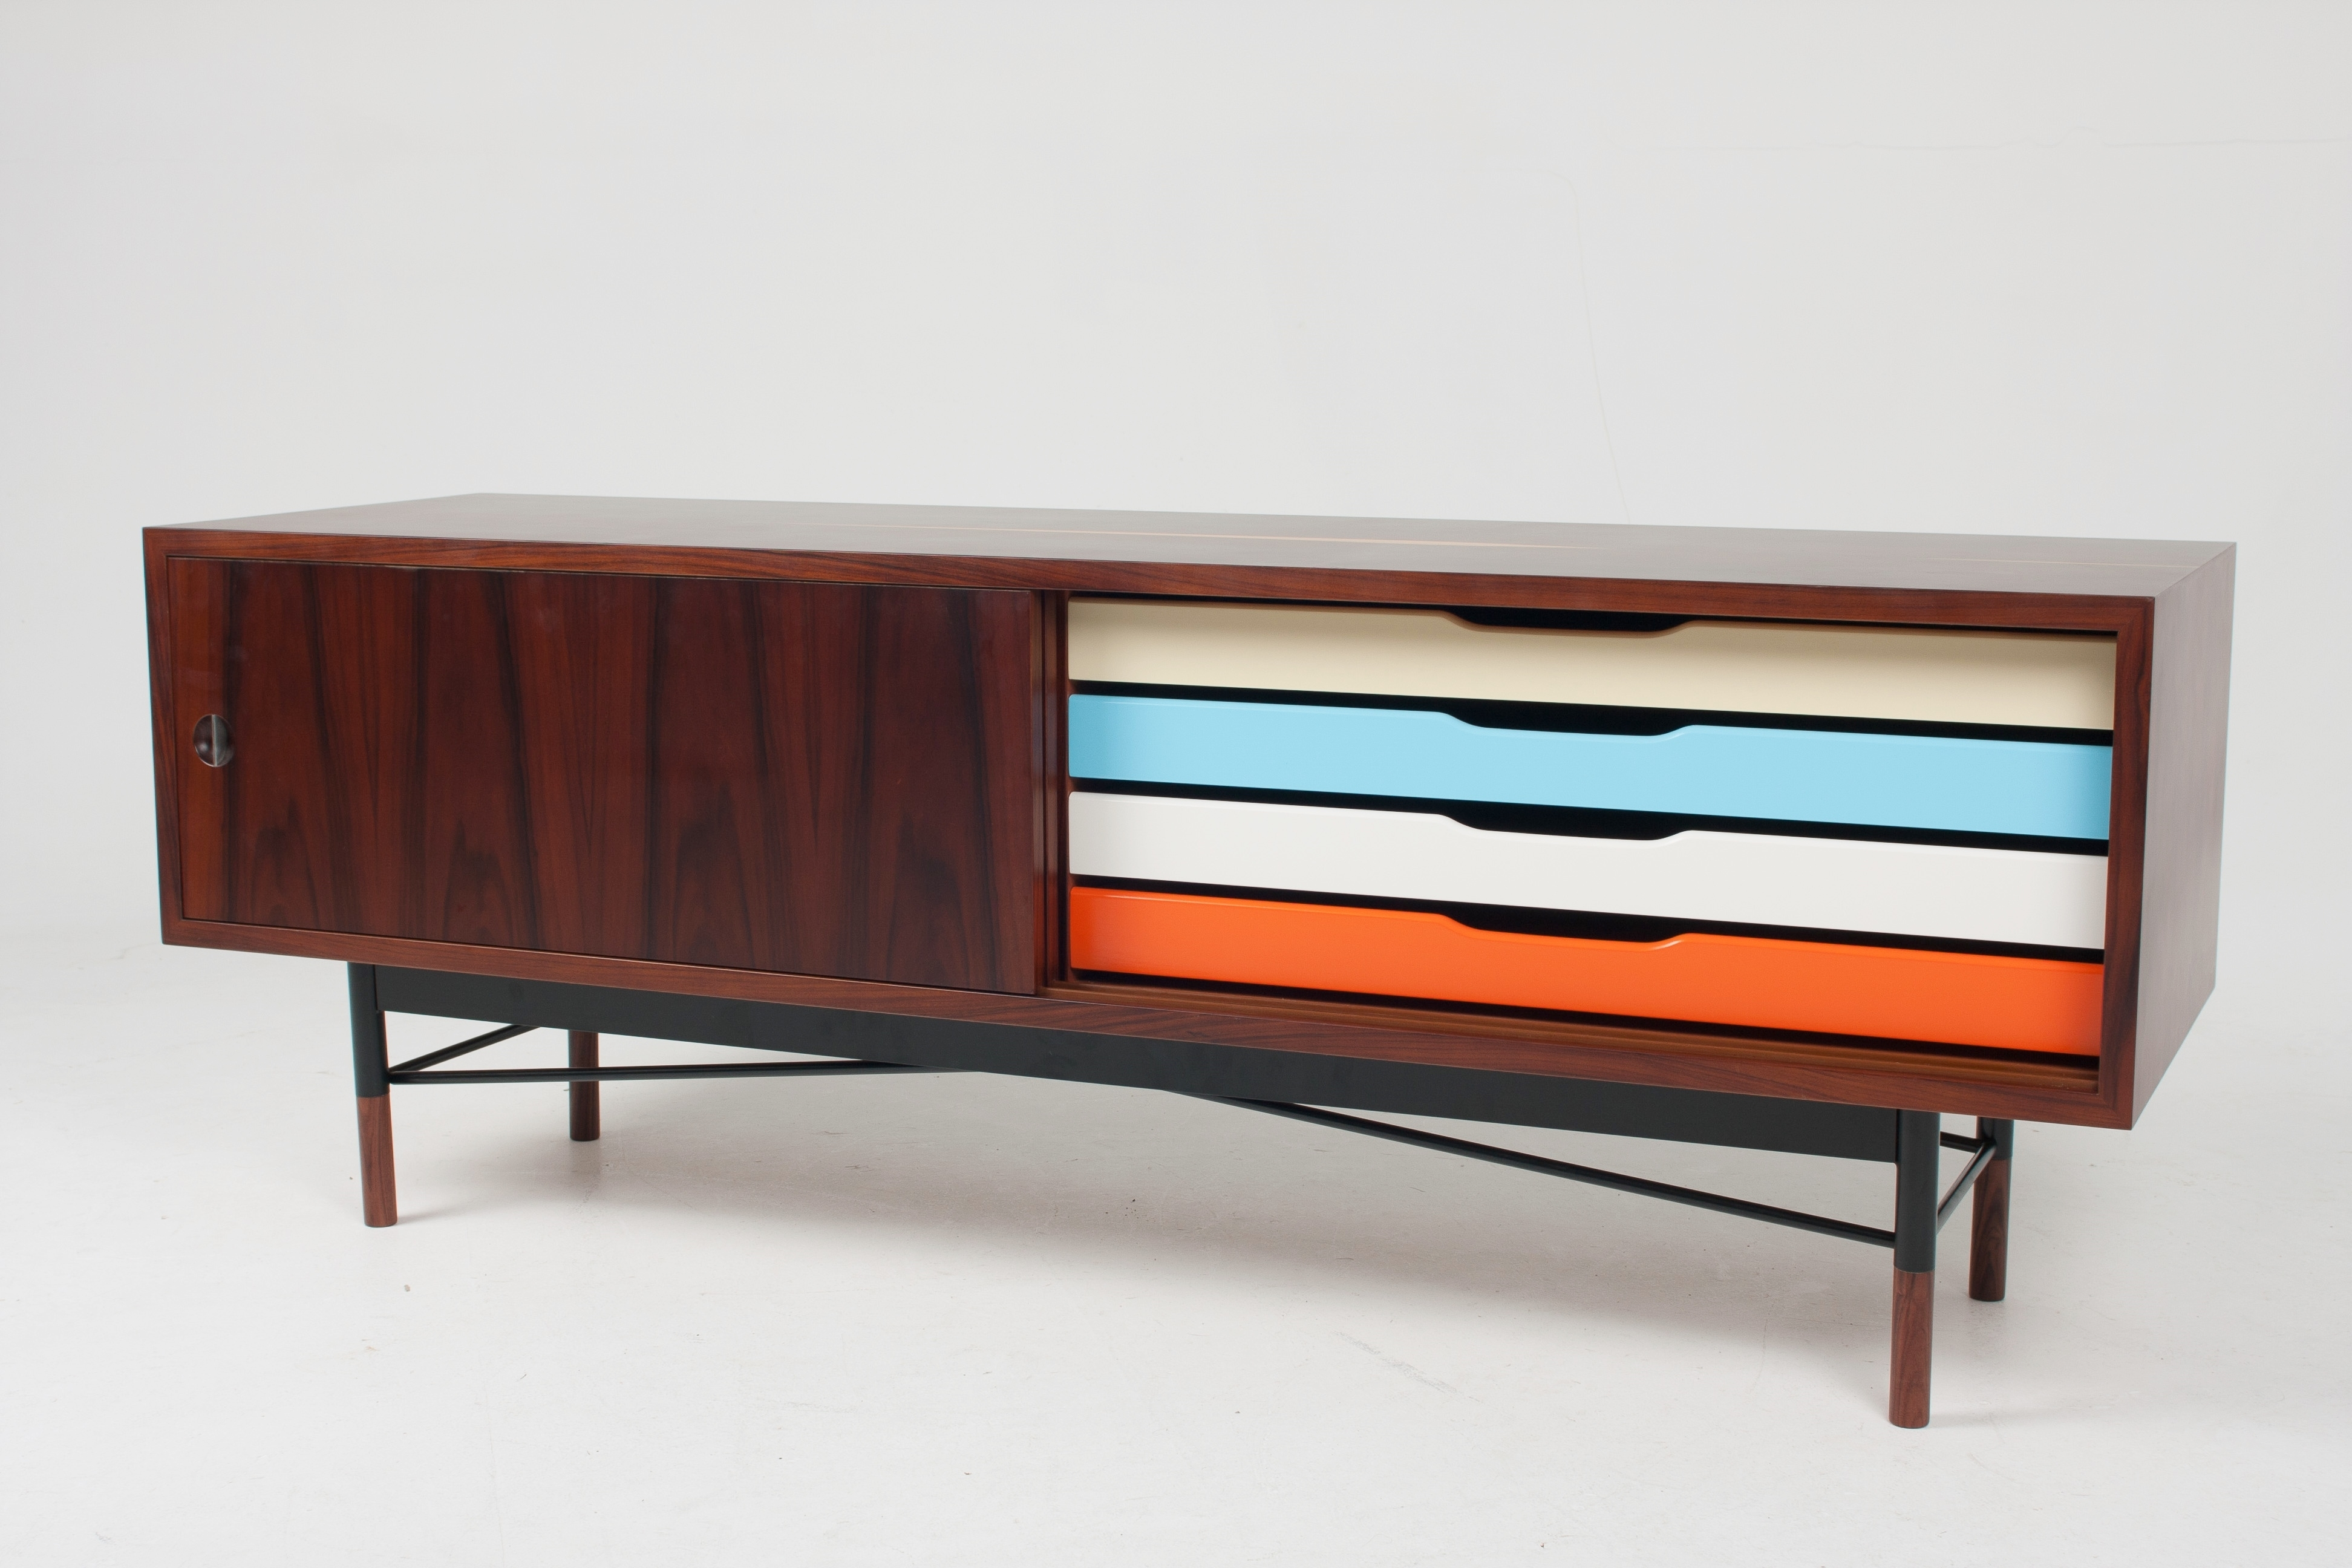 Sideboard Furniture Design Come With Walnut Material And Varnished Regarding Most Up To Date Walnut Finish 4 Door Sideboards (View 19 of 20)